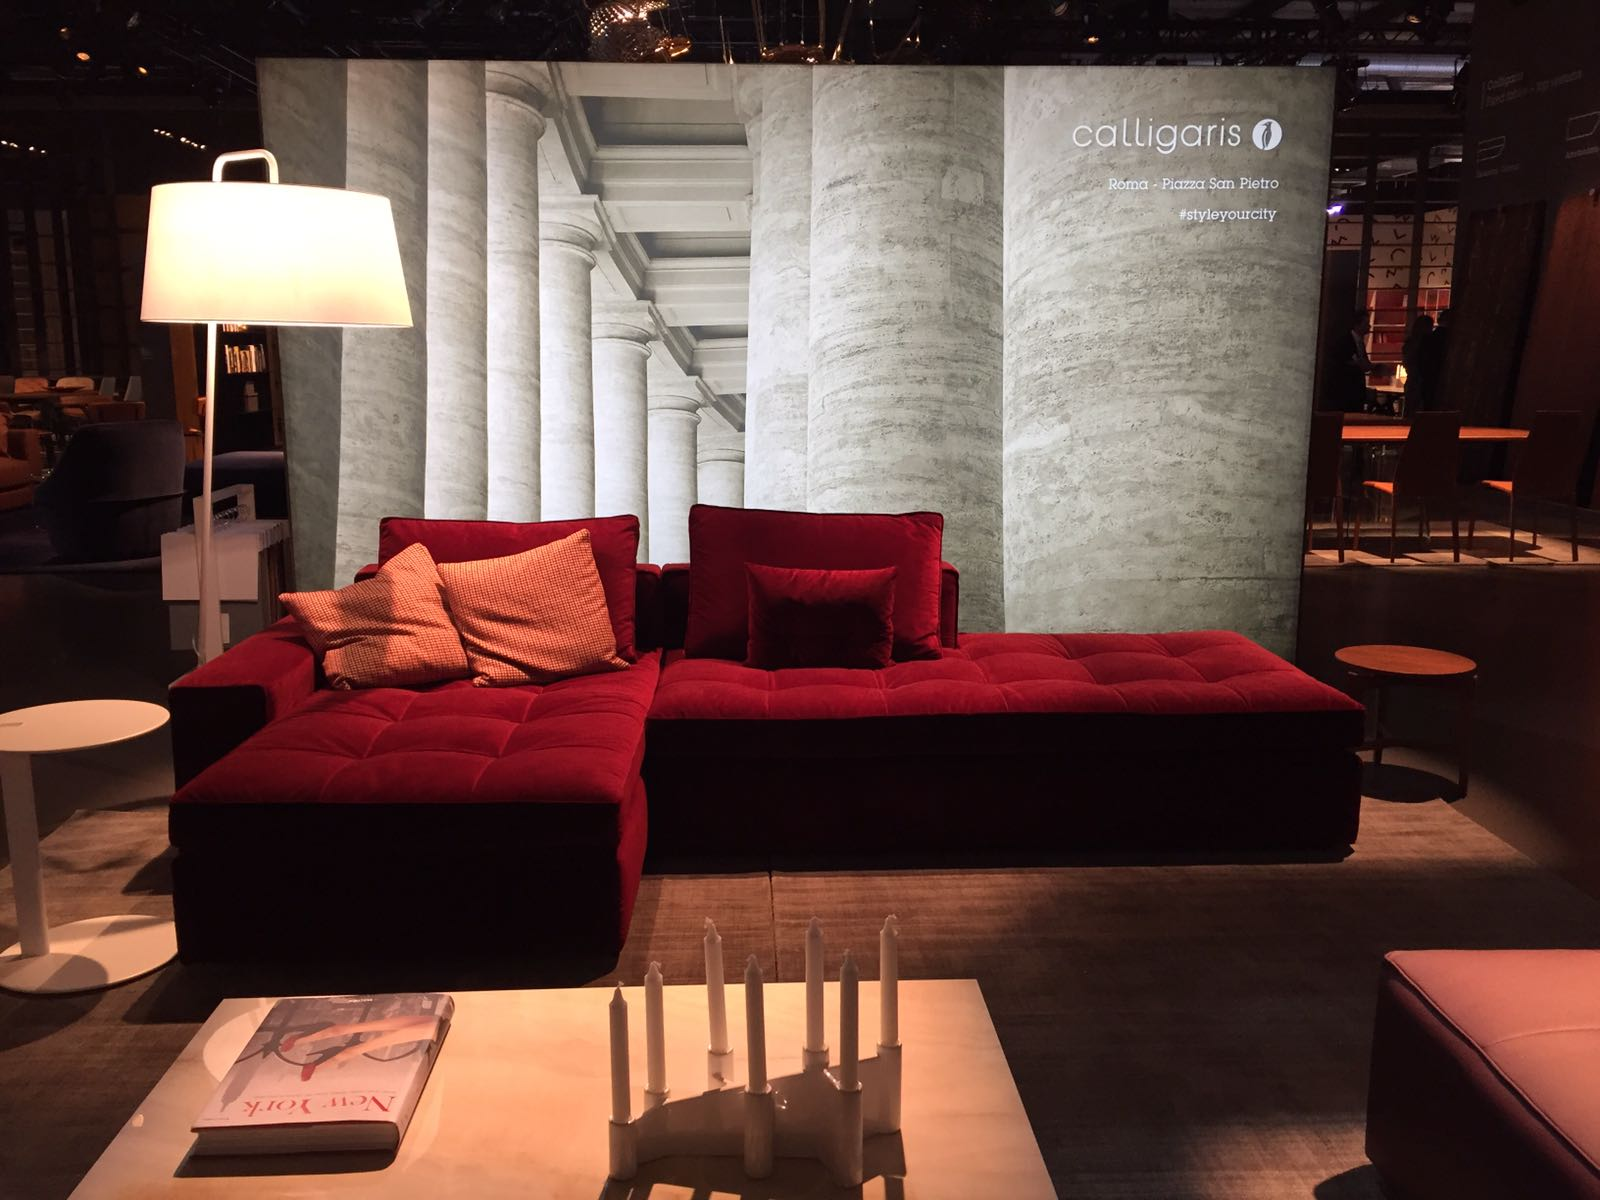 5 Color Trends Spotted at ISaloni 2017 salone del mobile 2017 5 Color Trends Spotted at Salone del Mobile 2017 5 Color Trends Spotted at Salone del Mobile 2017 4